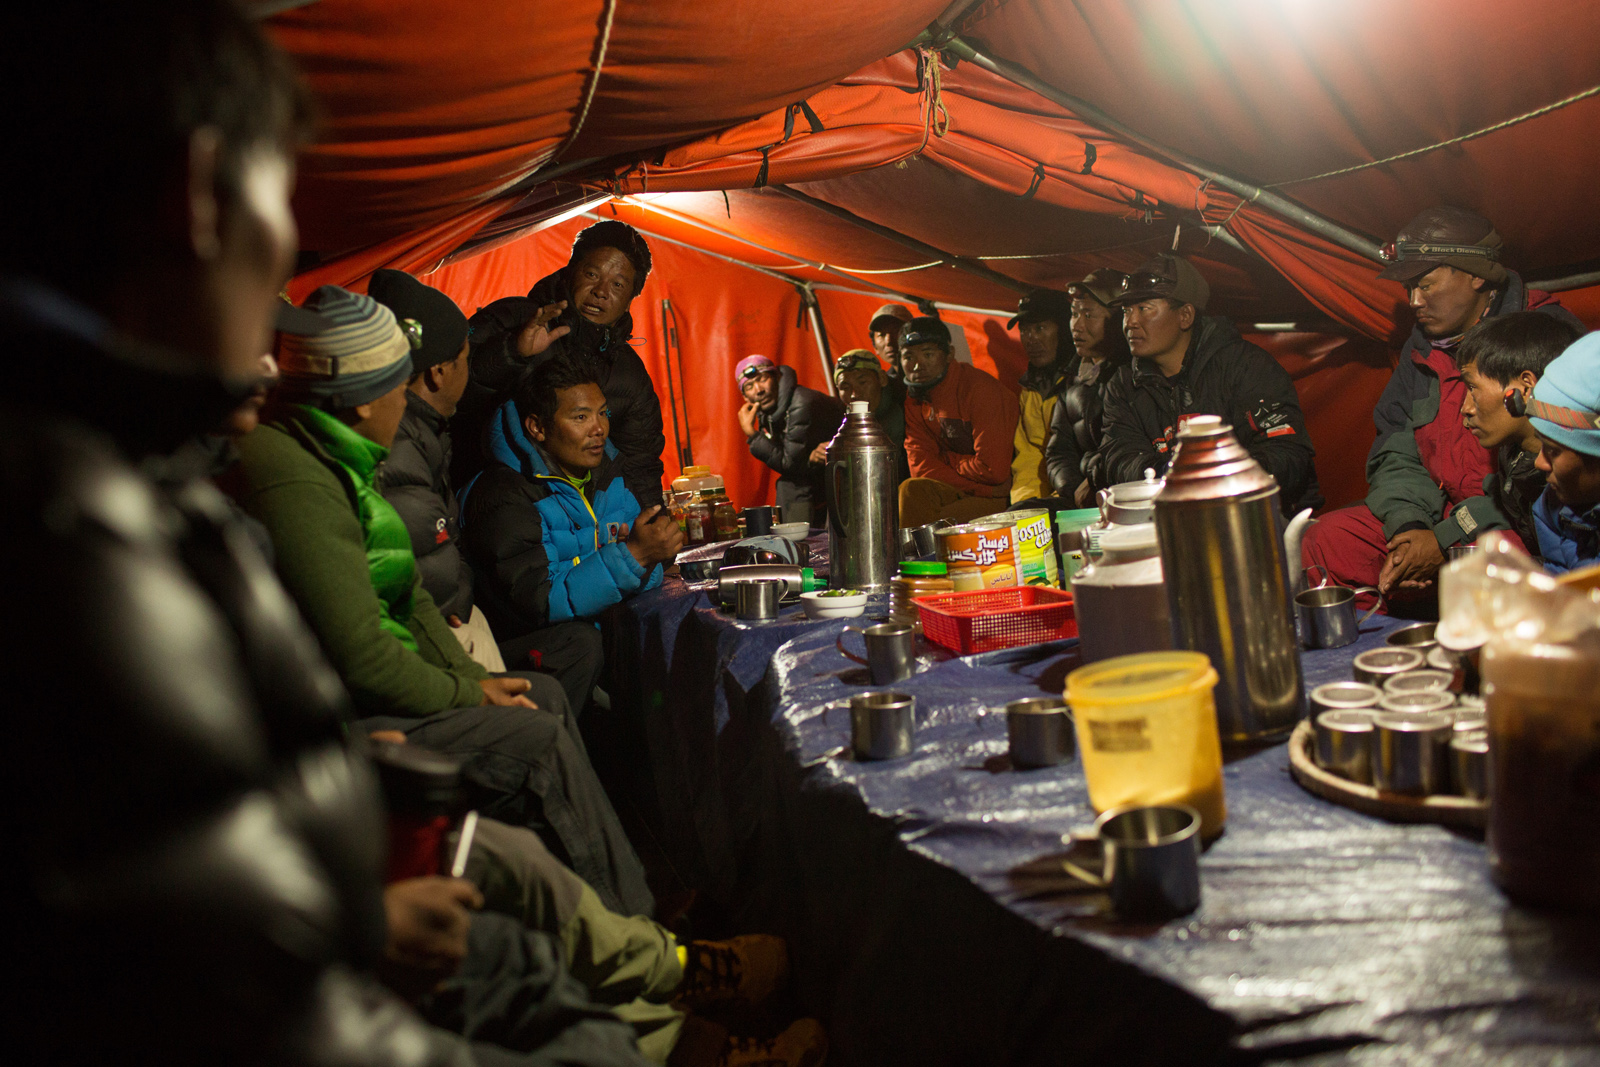 Climbing Sherpas huddle together in a mess tent to decide who will make the last runs across the Khumbu Ice Fall to collect the gear from Camp 2, 3, and 4, and also who will attempt a body rescue just below the summit.